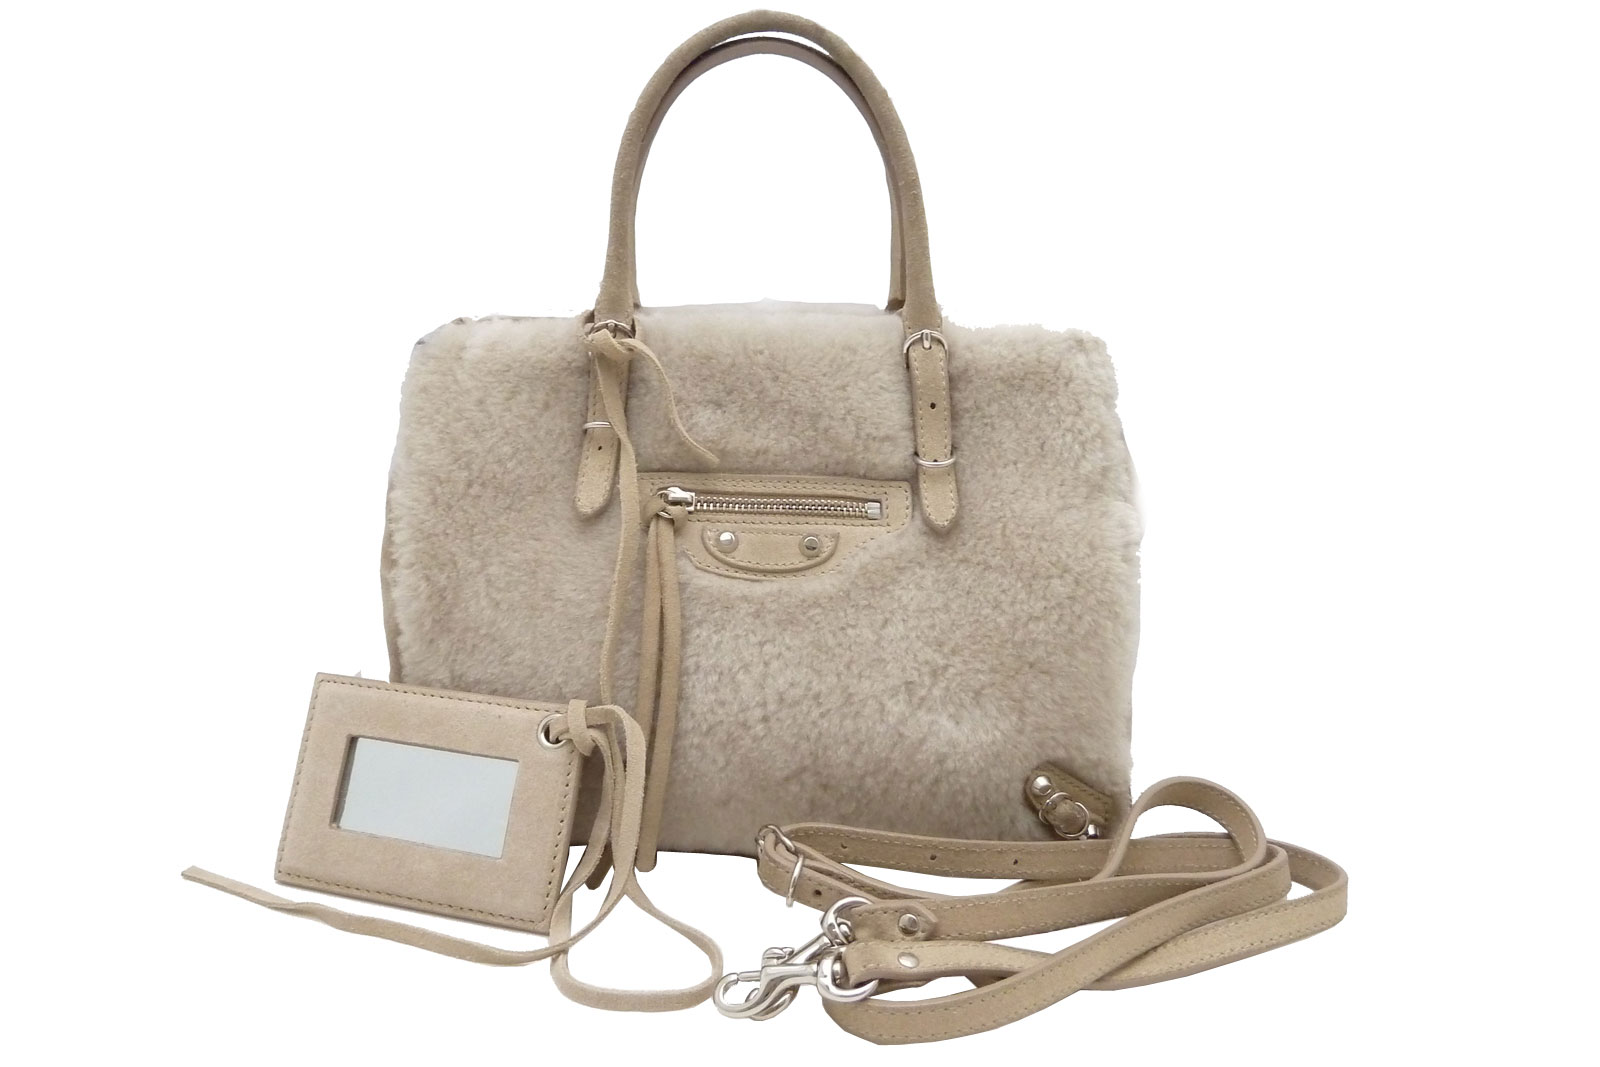 Free shipping BOTH ways on Handbags, Beige, from our vast selection of styles. Fast delivery, and 24/7/ real-person service with a smile. Click or call